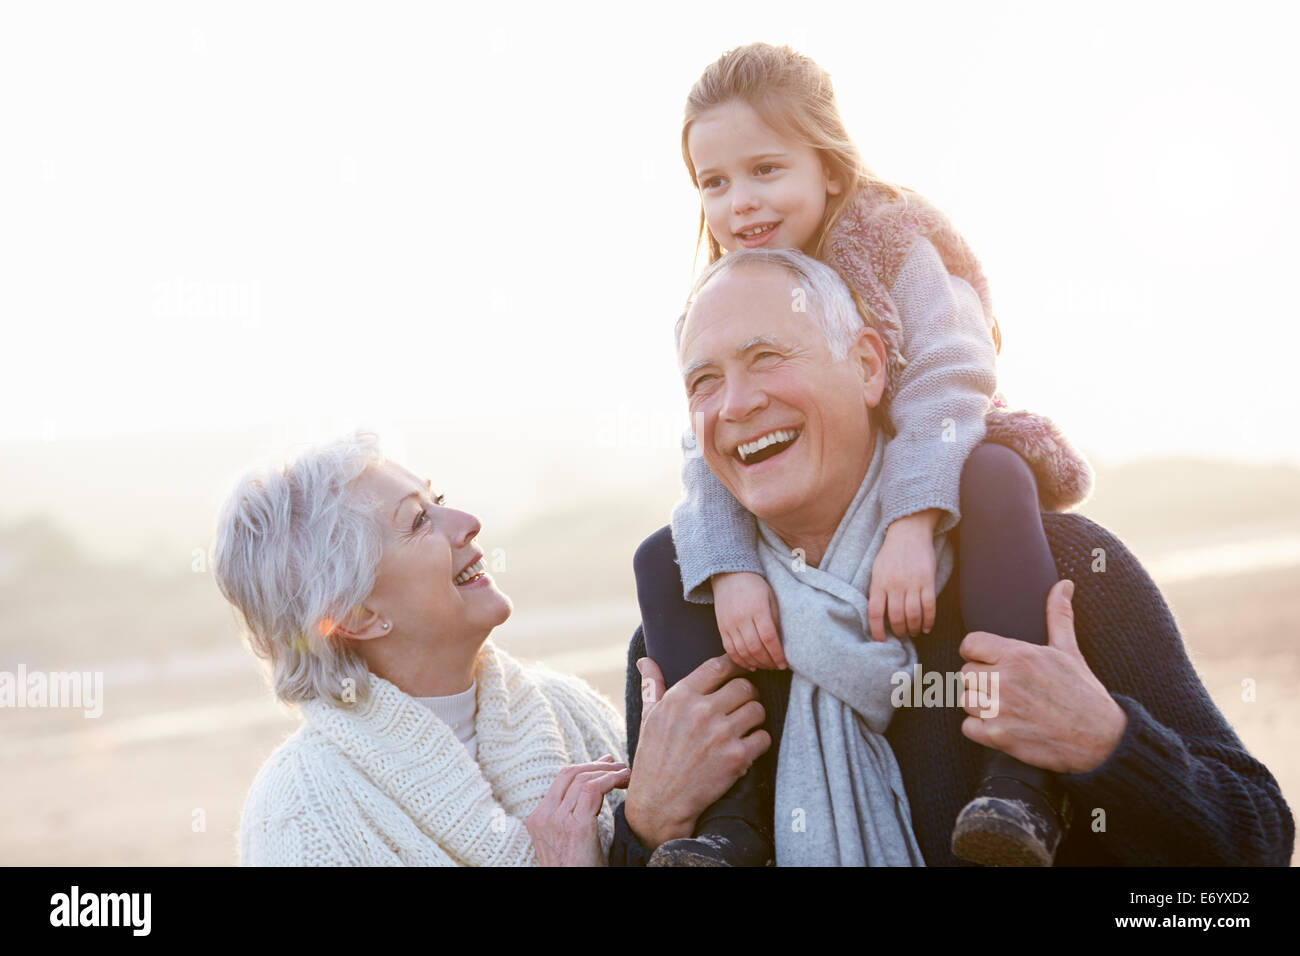 Grandparents And Granddaughter Walking On Winter Beach - Stock Image